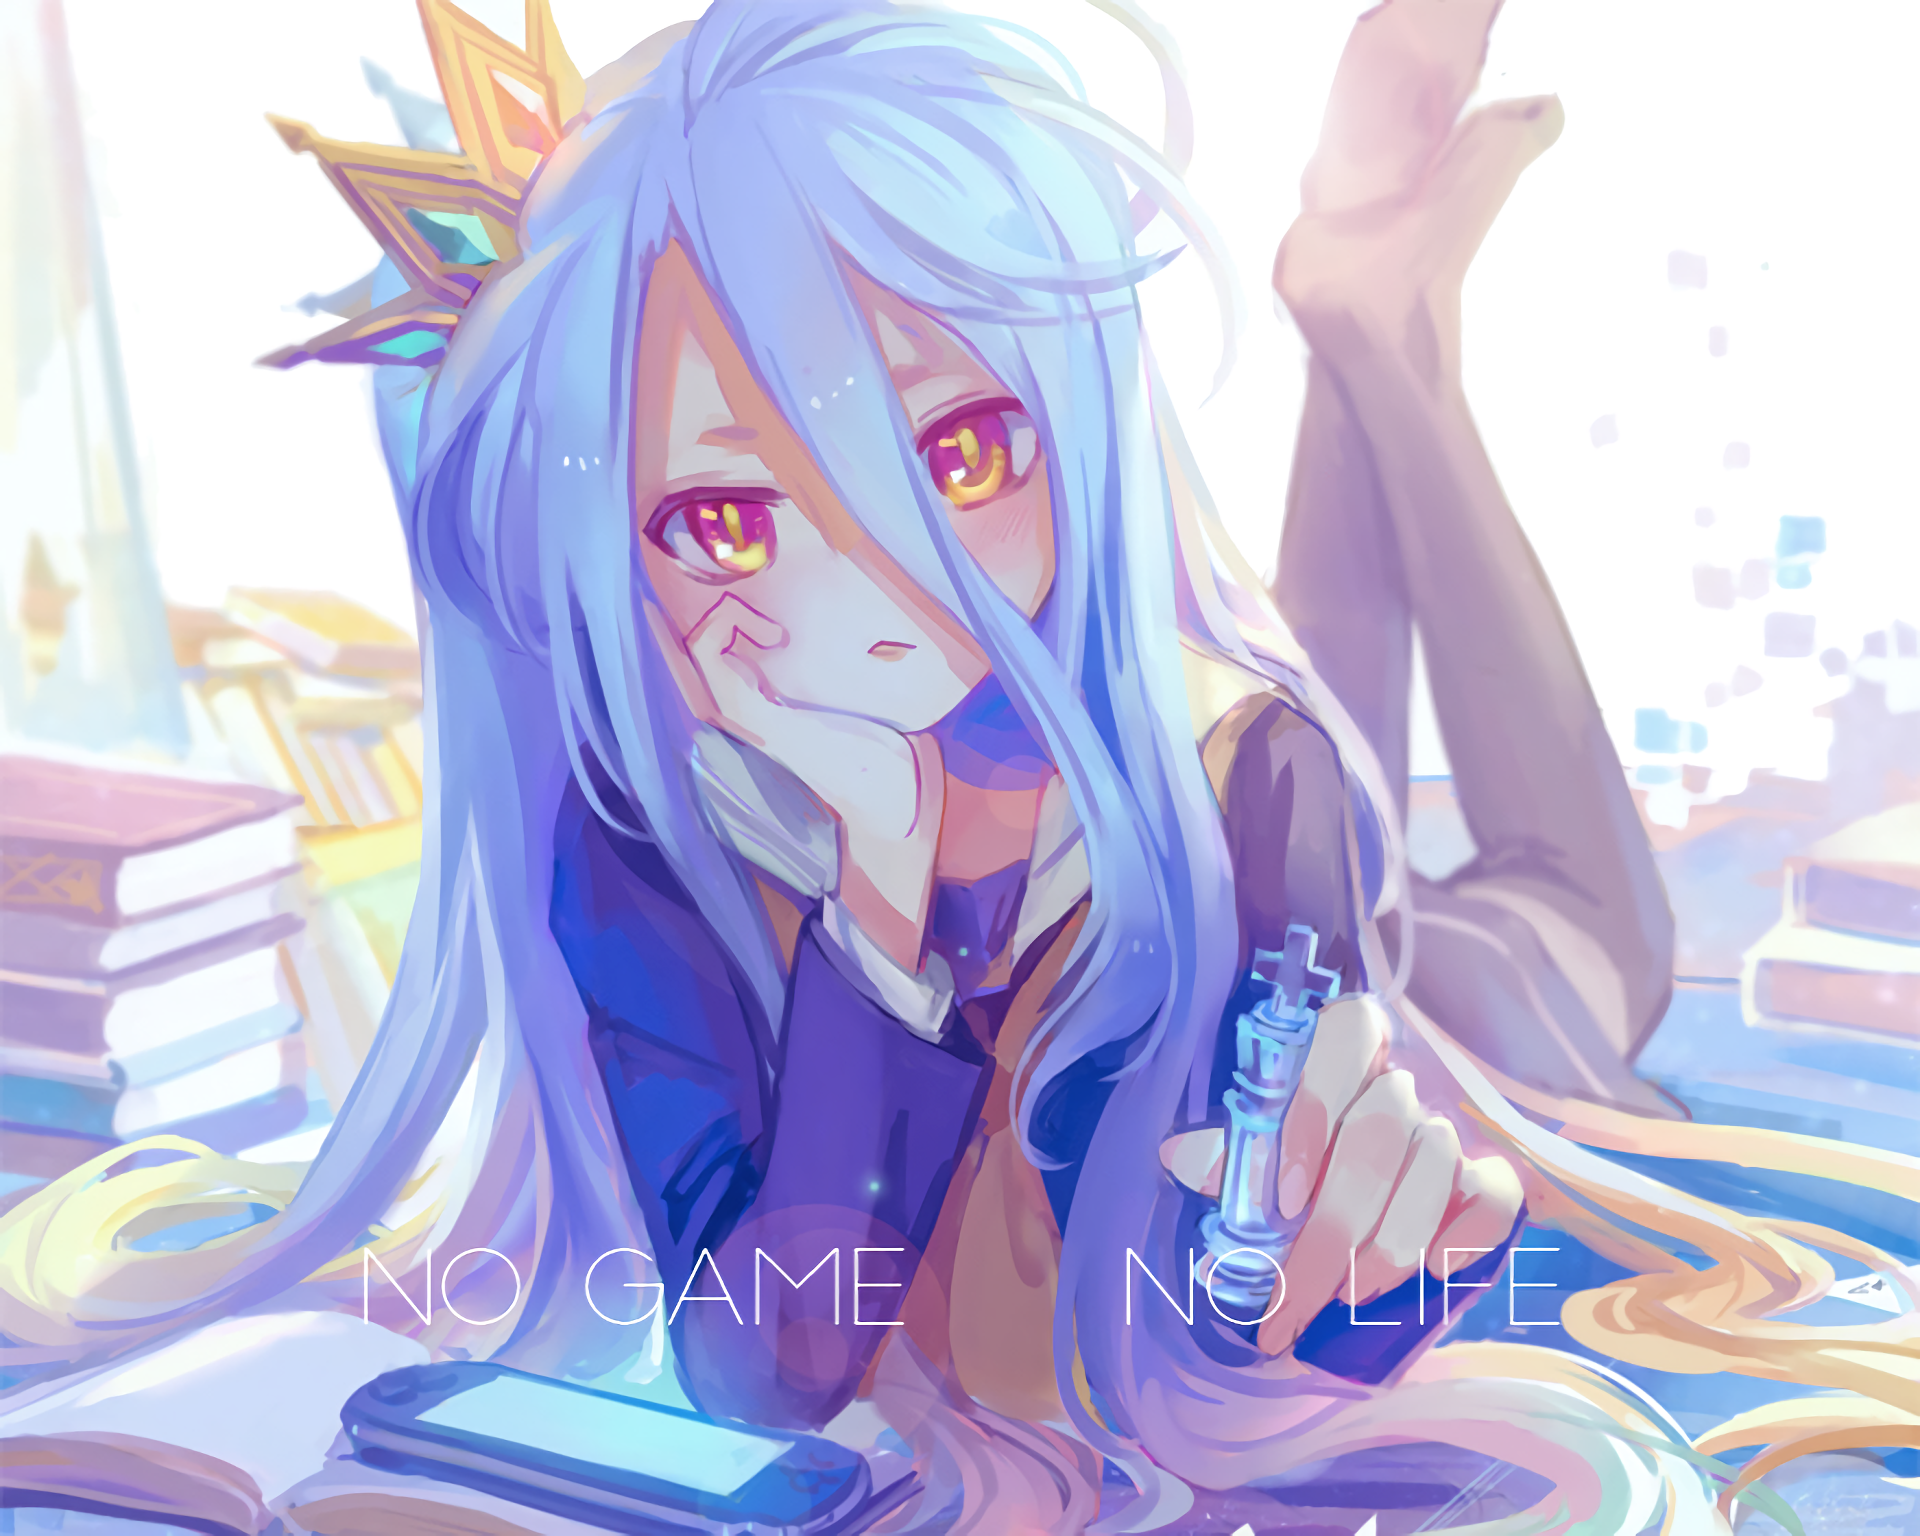 Magnificent 145 No Game No Life Hd Wallpapers Backgrounds Wallpaper Abyss Short Hairstyles Gunalazisus